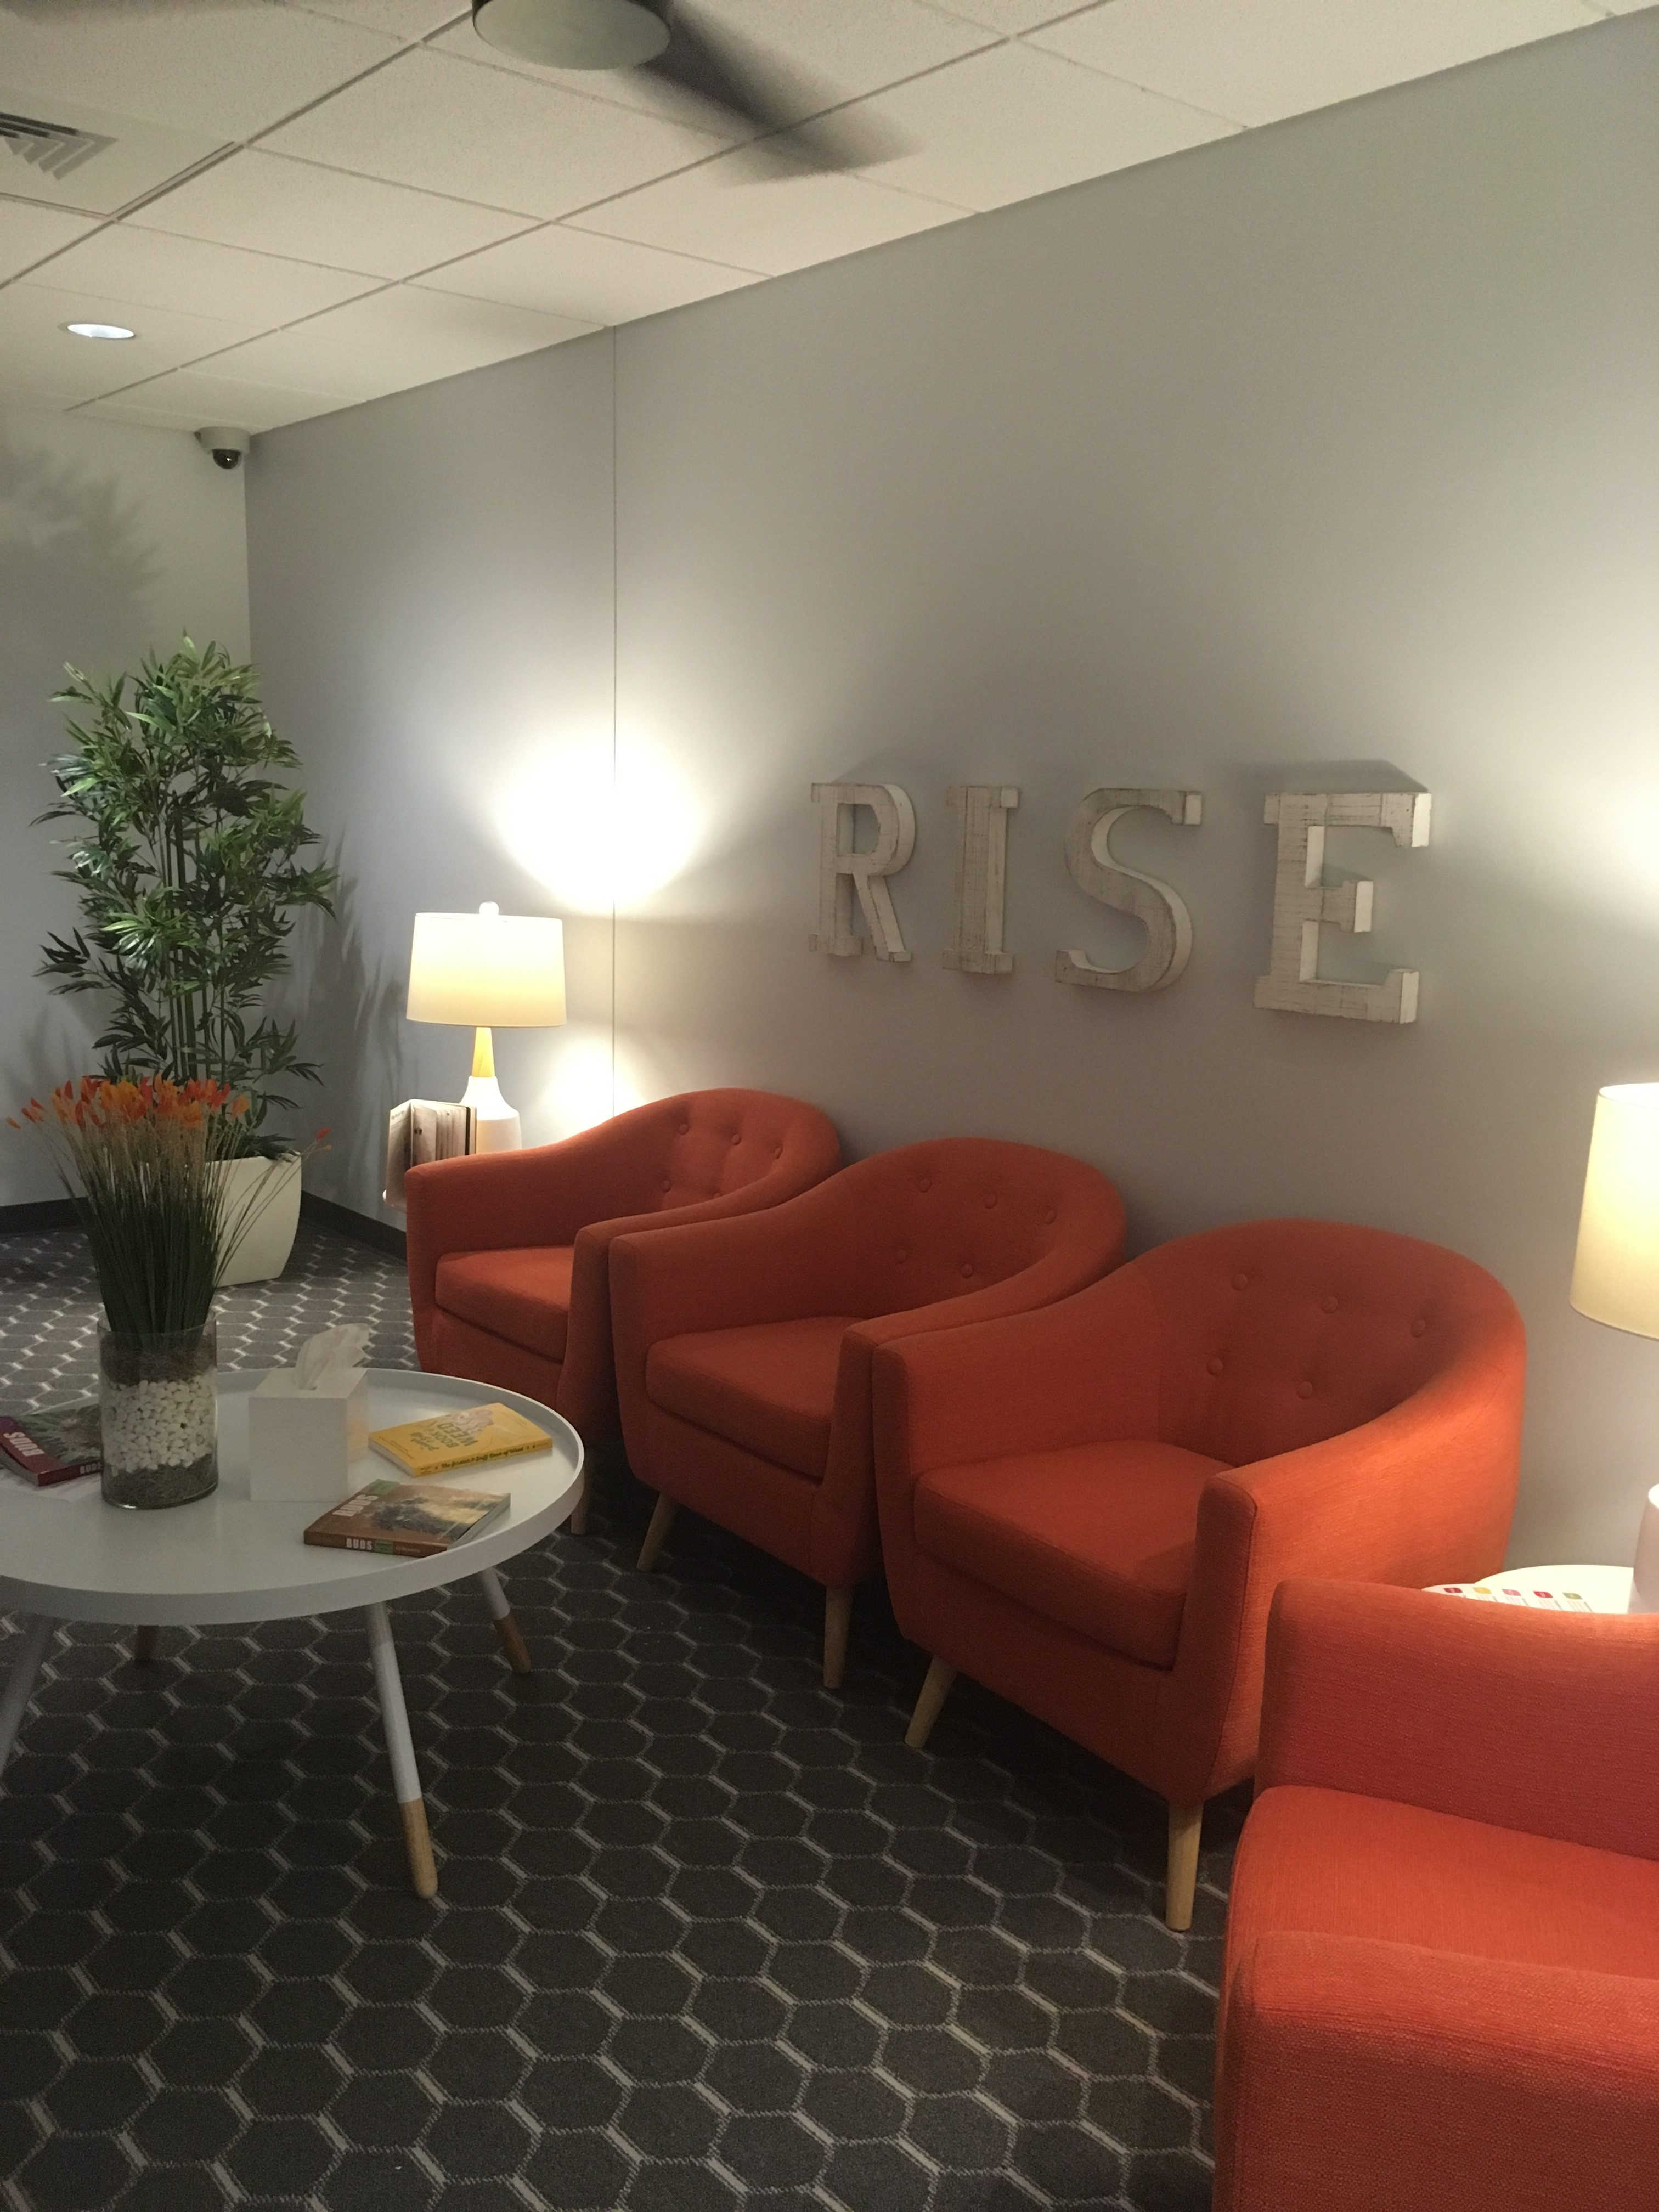 Inside rise amherst the medical marijuana dispensary owned by gti meg bantle photo